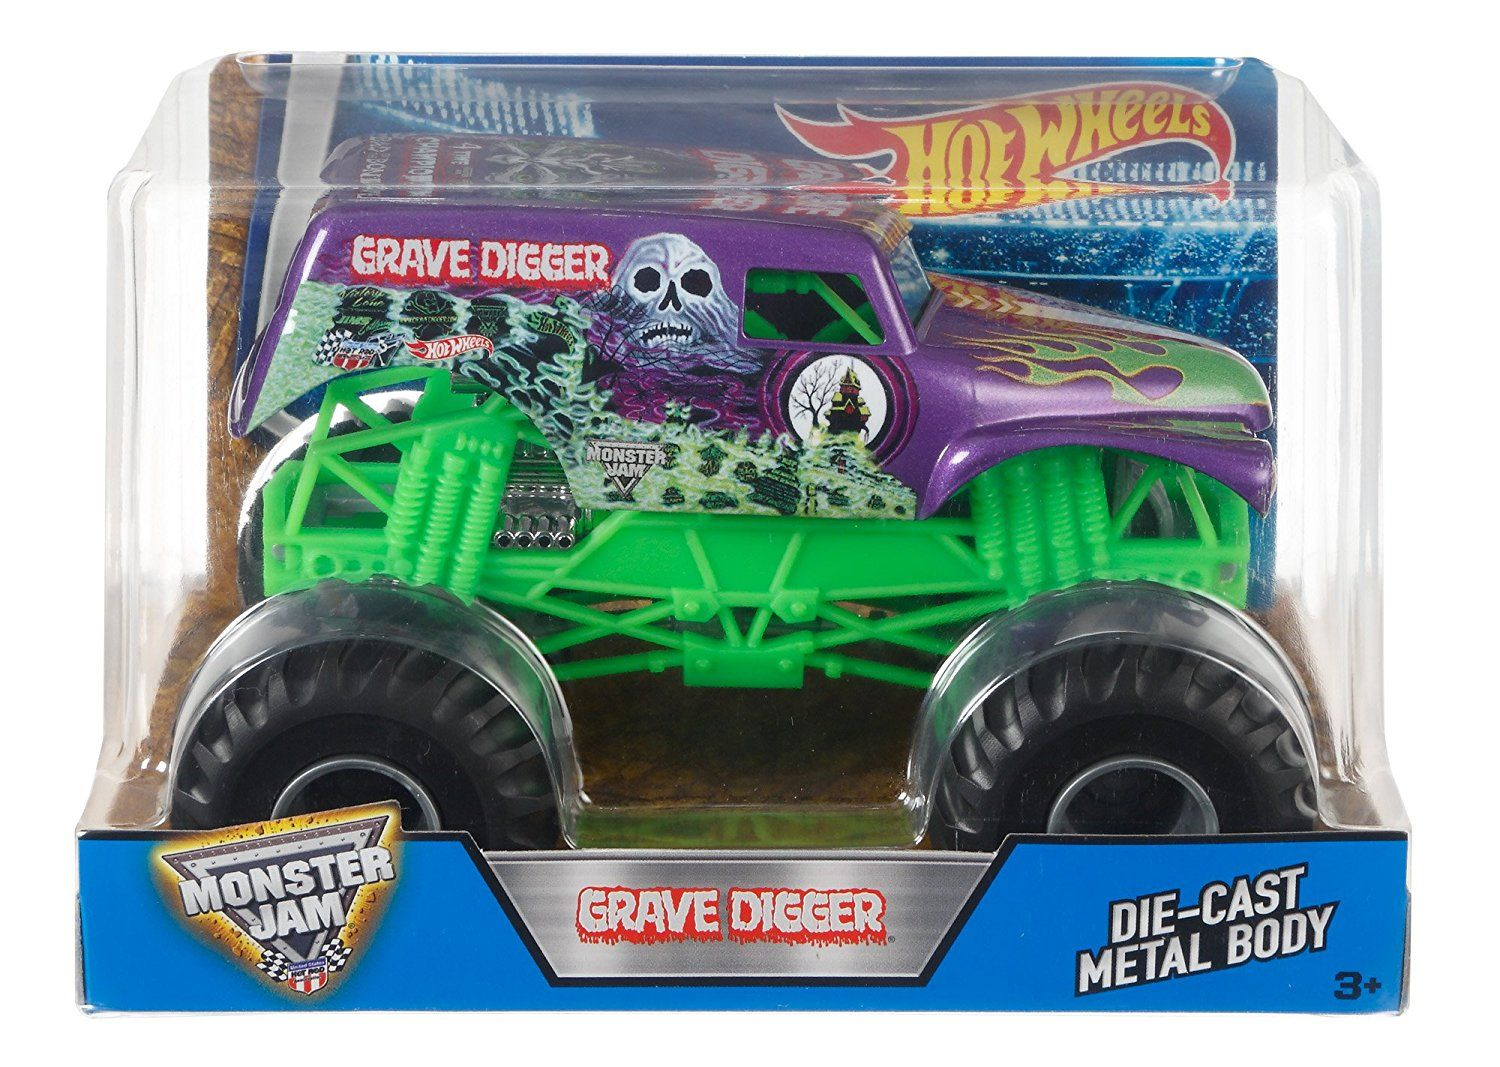 Amazon.com: Hot Wheels Monster Jam Grave Digger Truck, Purple: Toys & Games